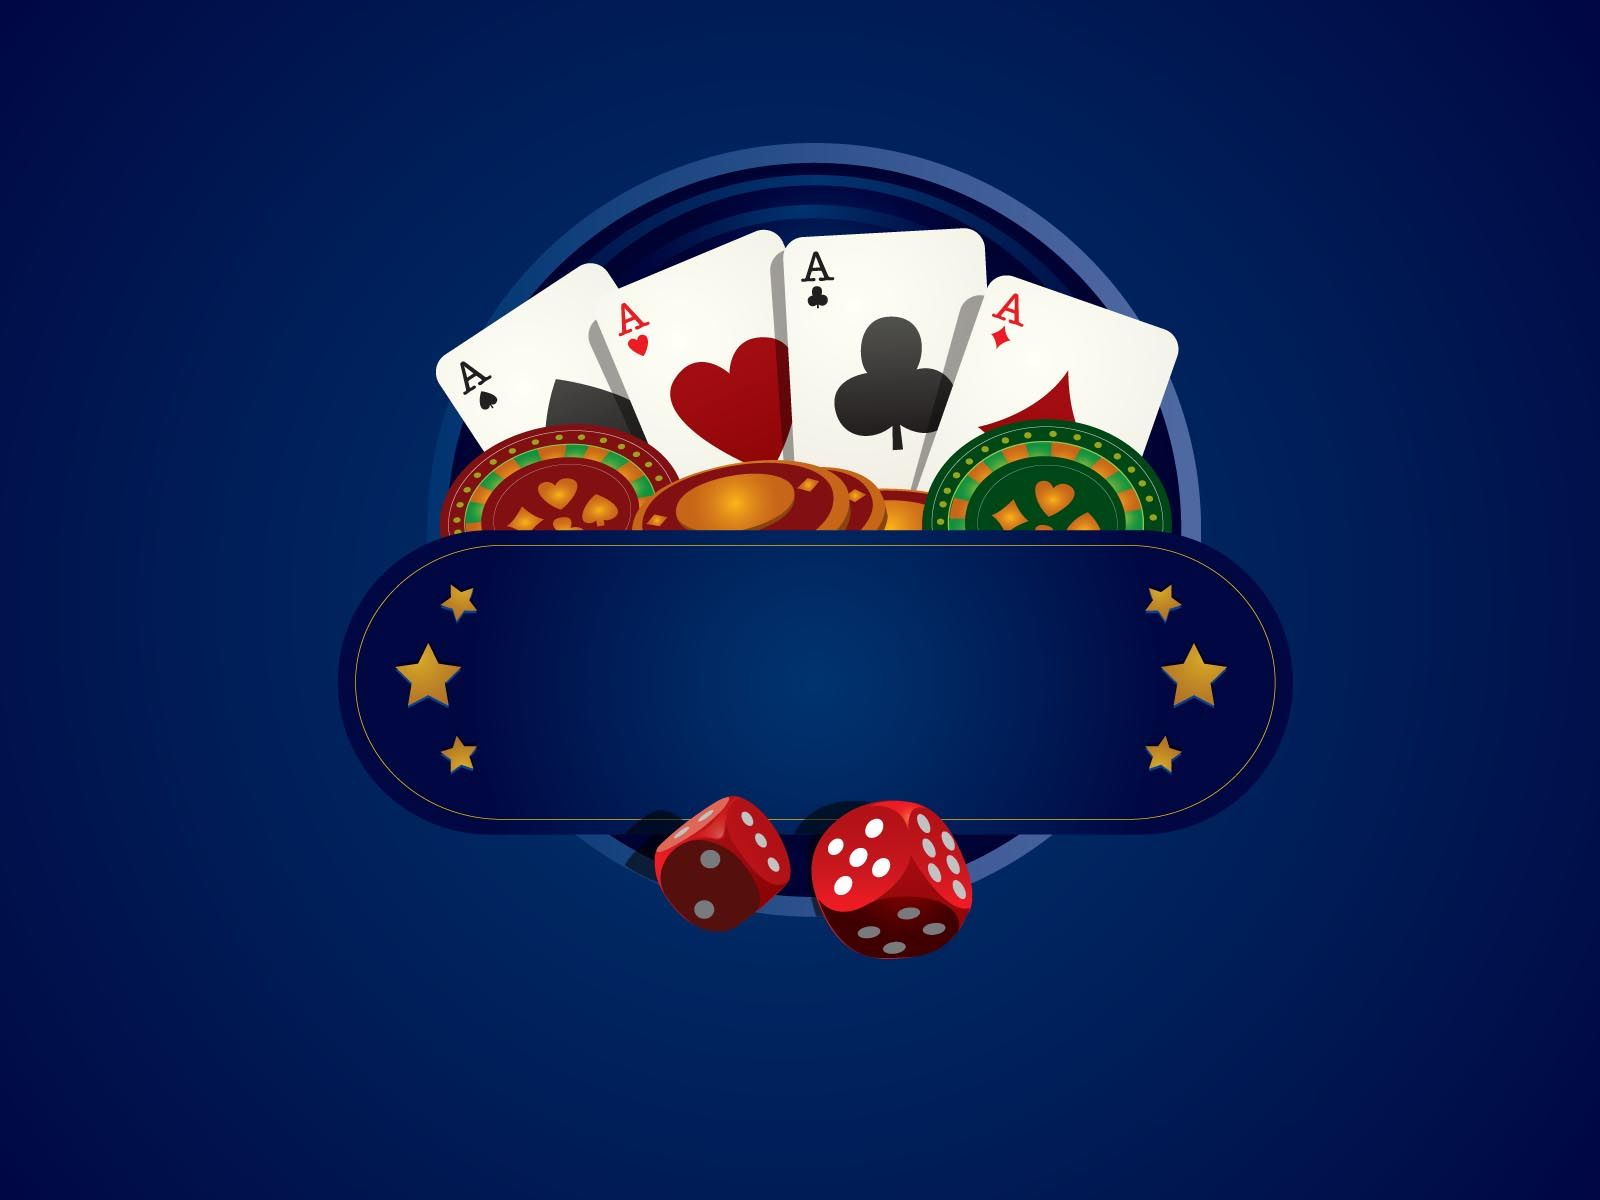 Mastering The best Way Of Gambling Shouldn't be An Accident